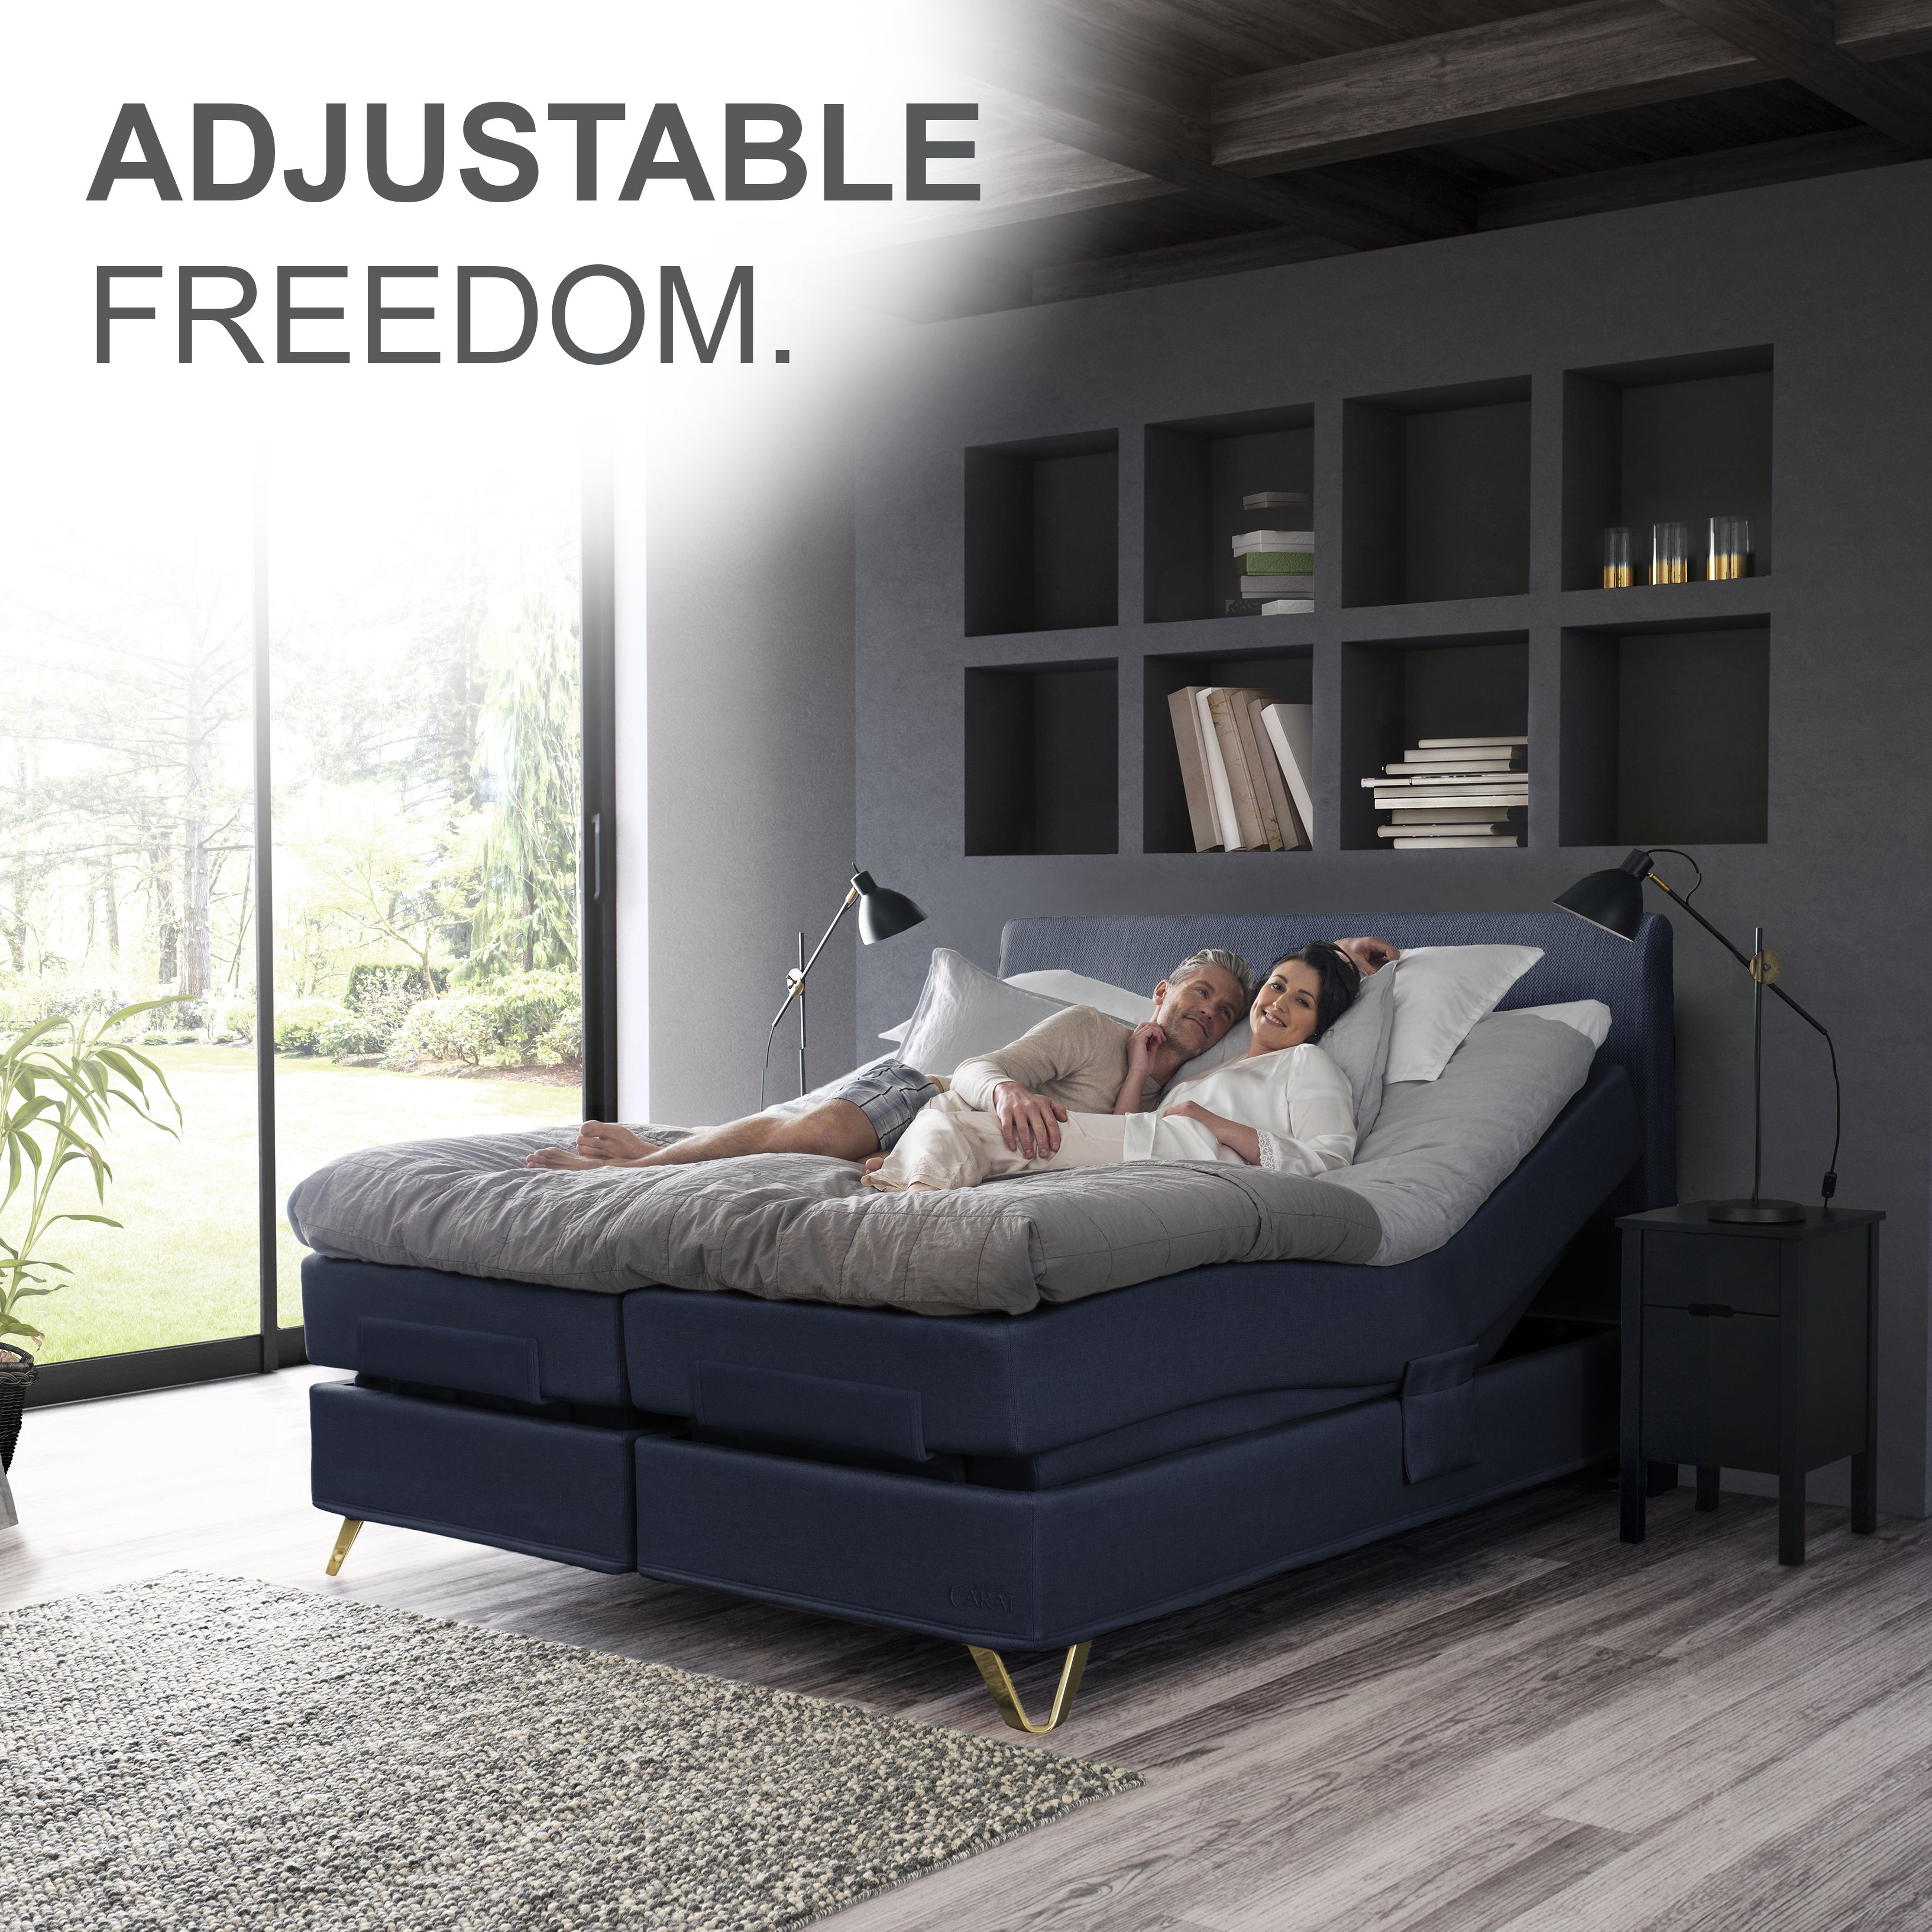 adjustable freedom with an adjustable bed an adjustable bed